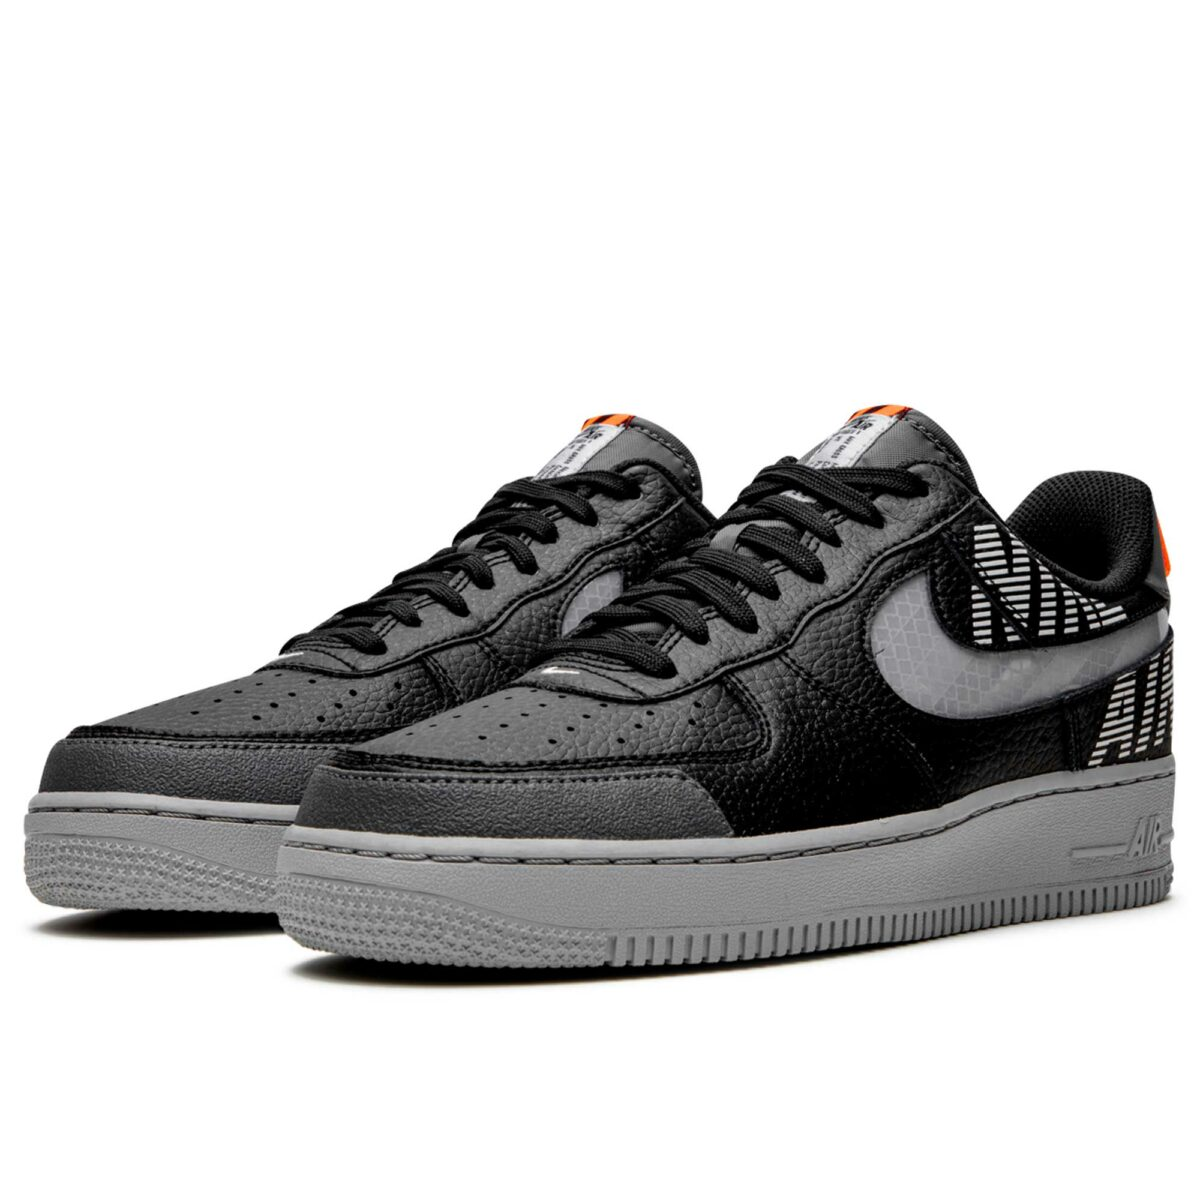 nike air force 1 lv8 under construction black BQ4421_002 купить